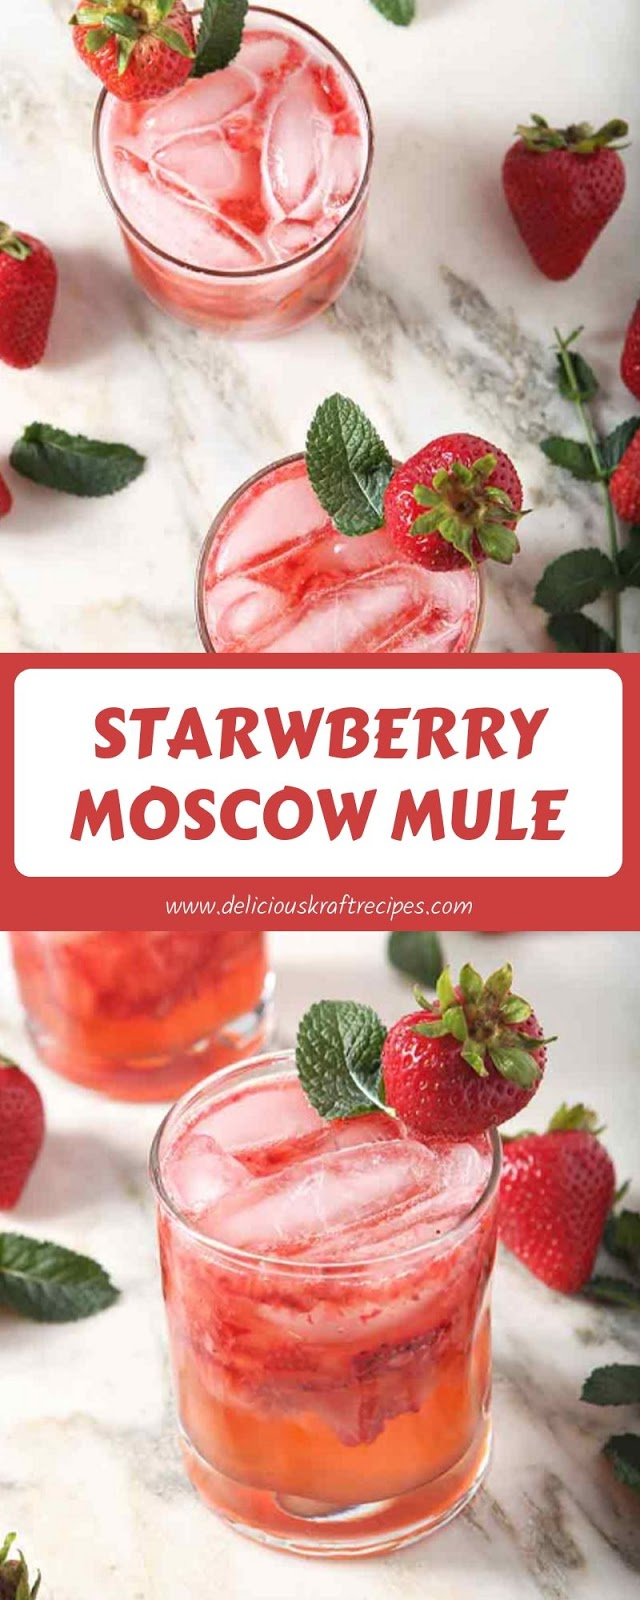 STARWBERRY MOSCOW MULE